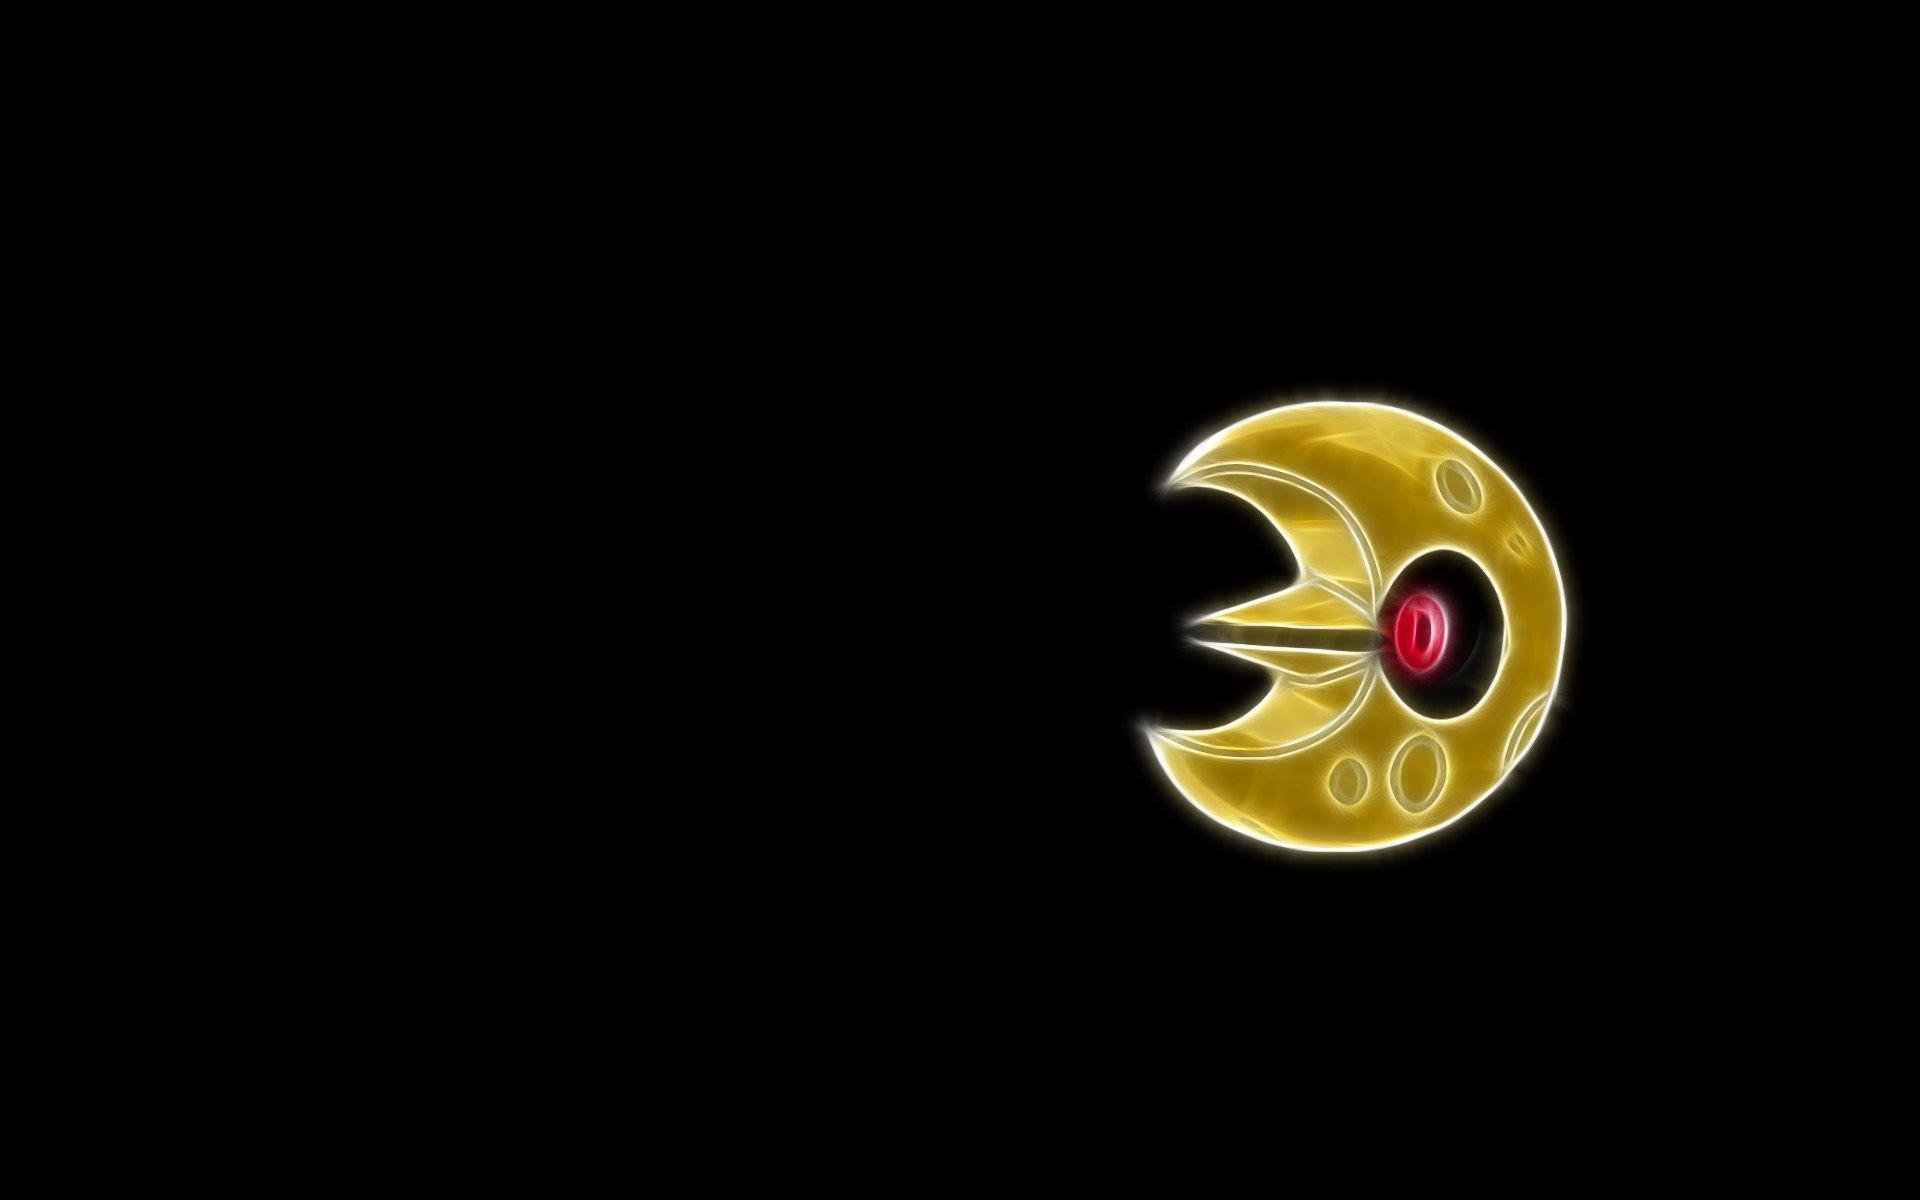 4 Lunatone (Pokémon) HD Wallpapers | Background Images - Wallpaper Abyss